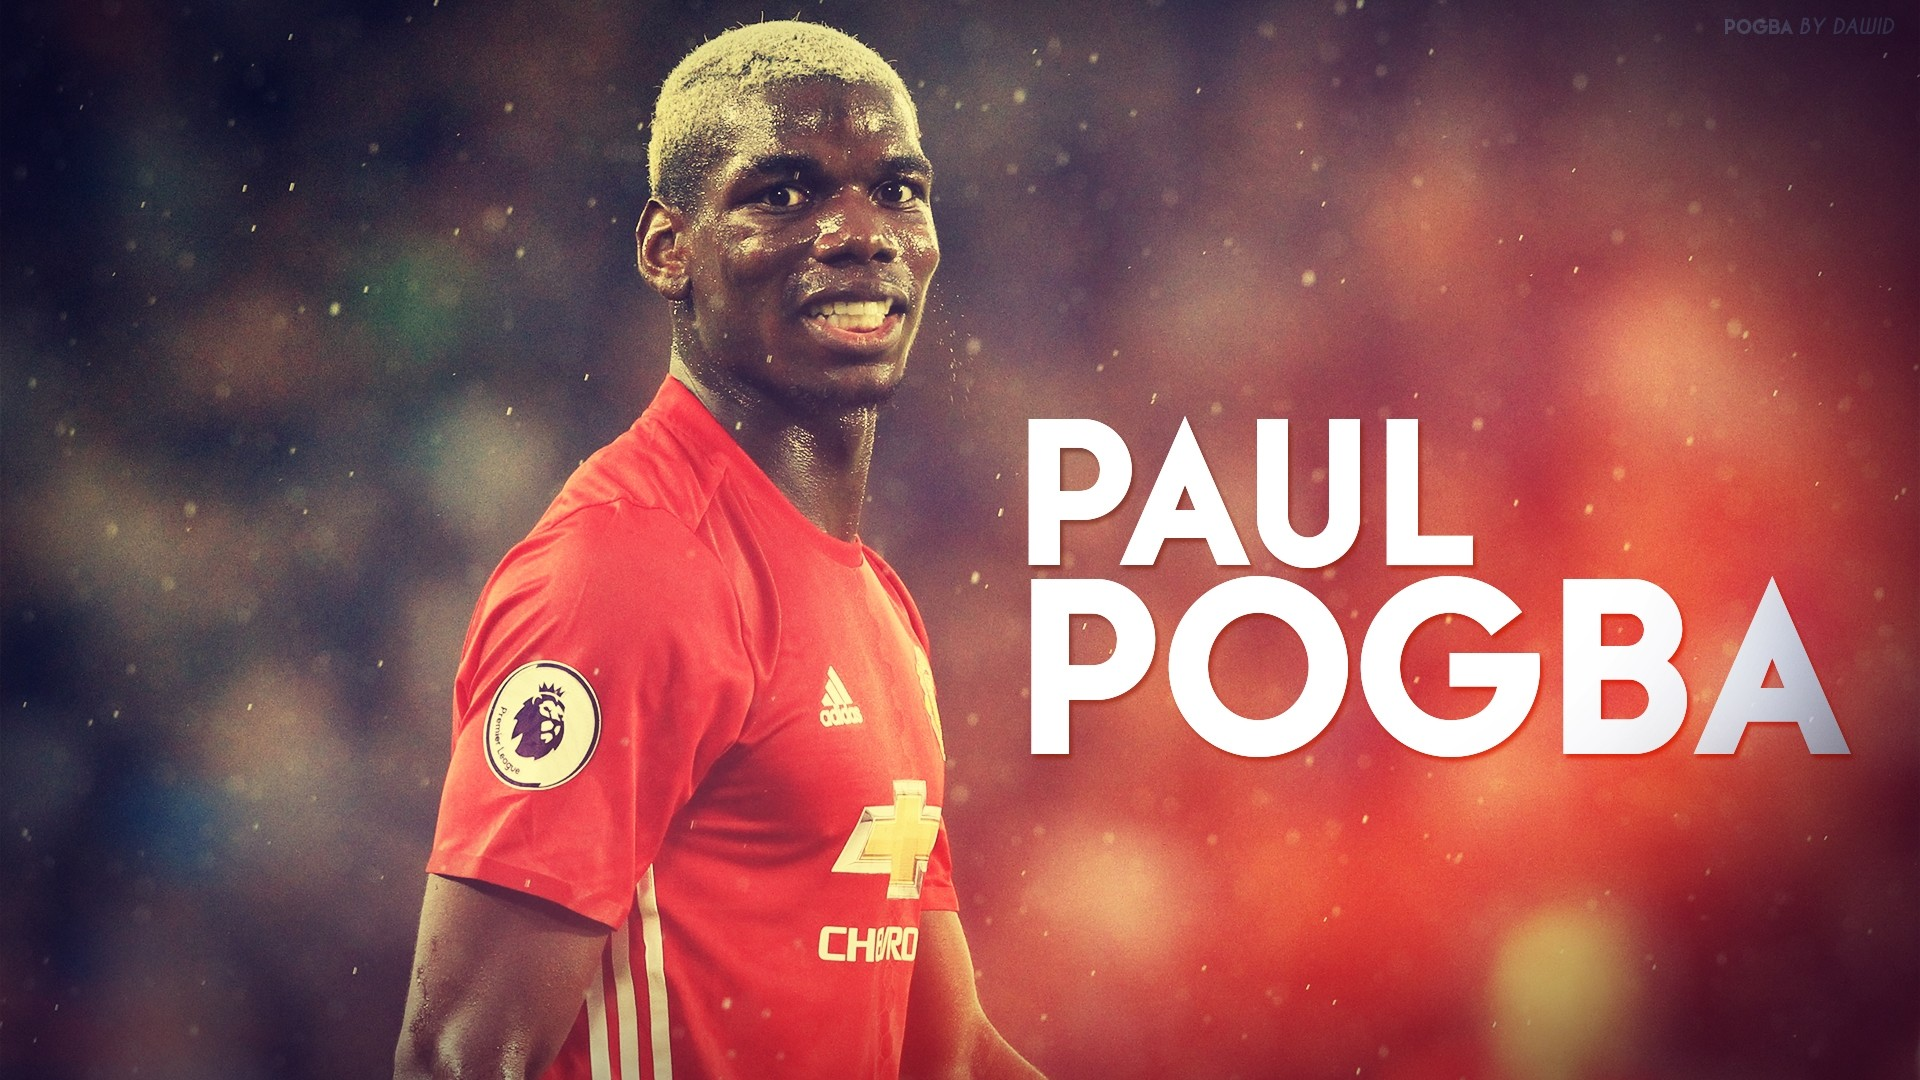 Res: 1920x1080, Awesome Paul Pogba Dab Wallpaper